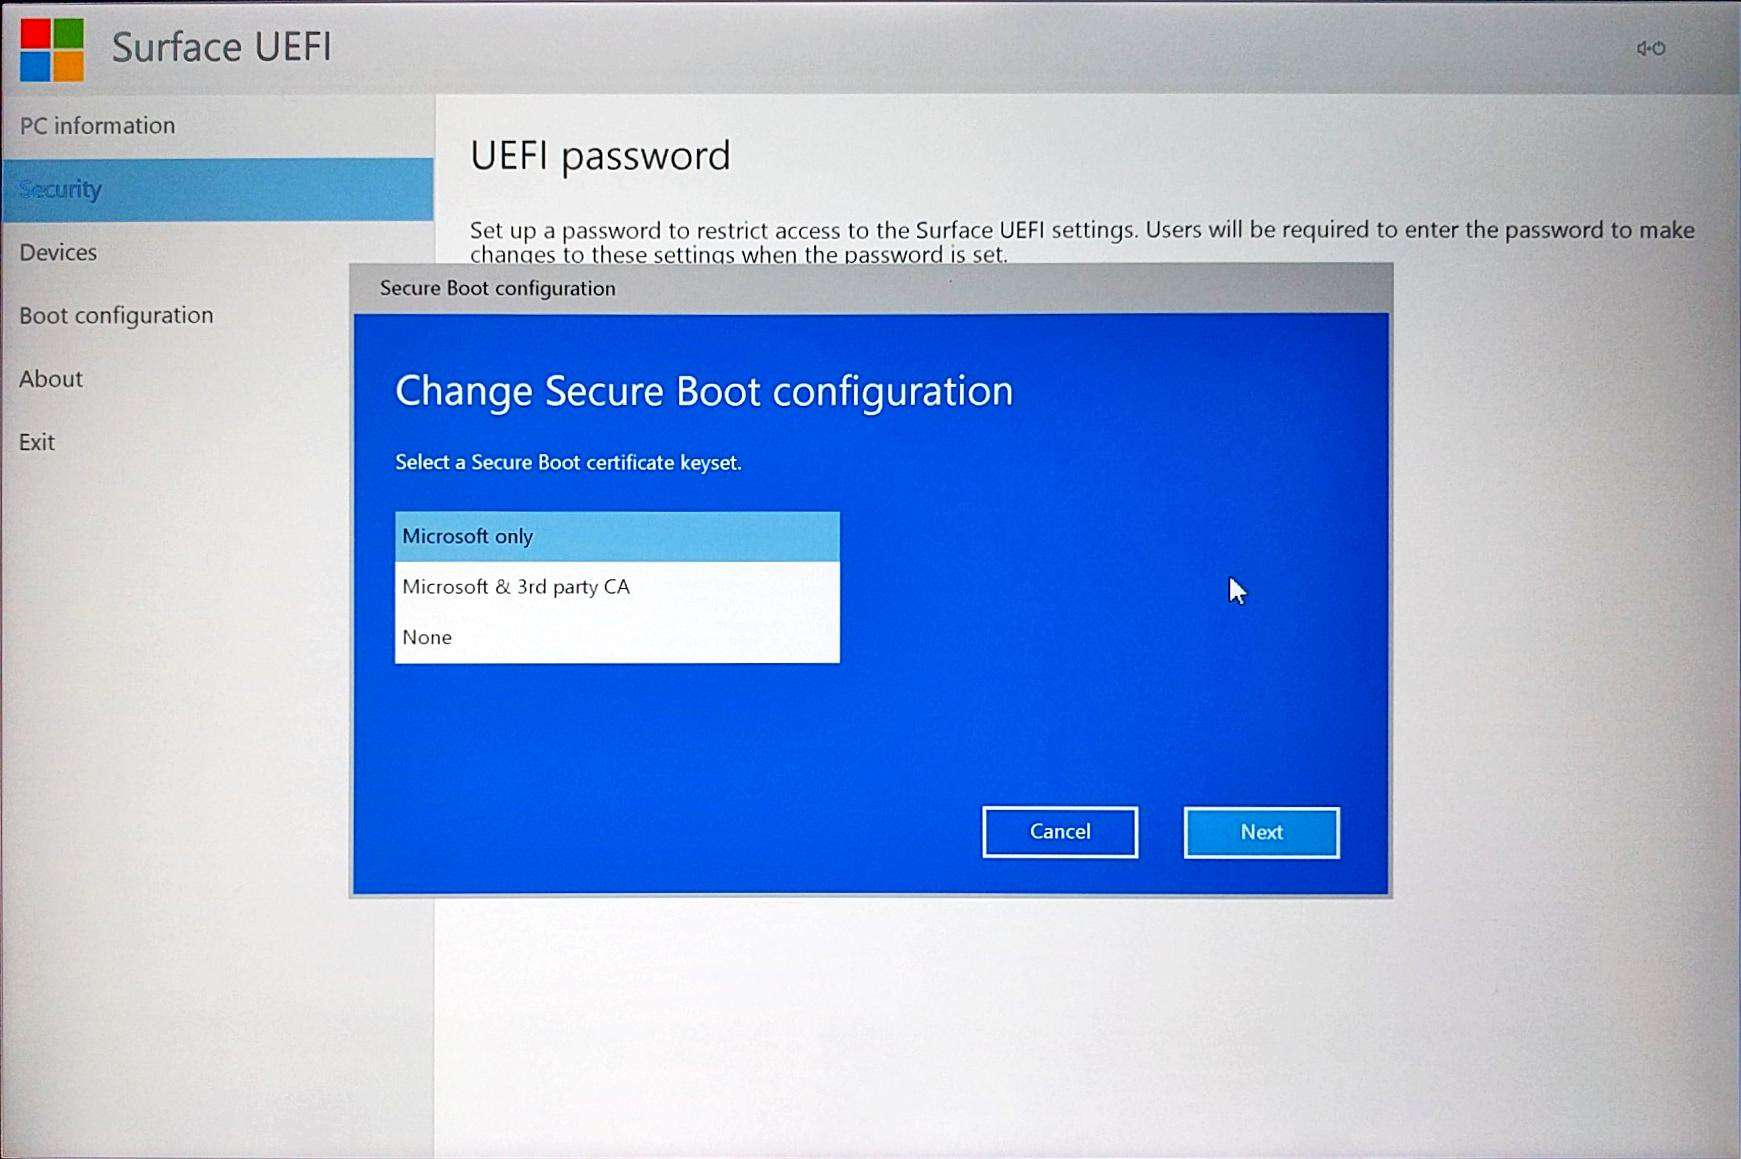 Surface Pro 4 - UEFI > Security > Change Configuration